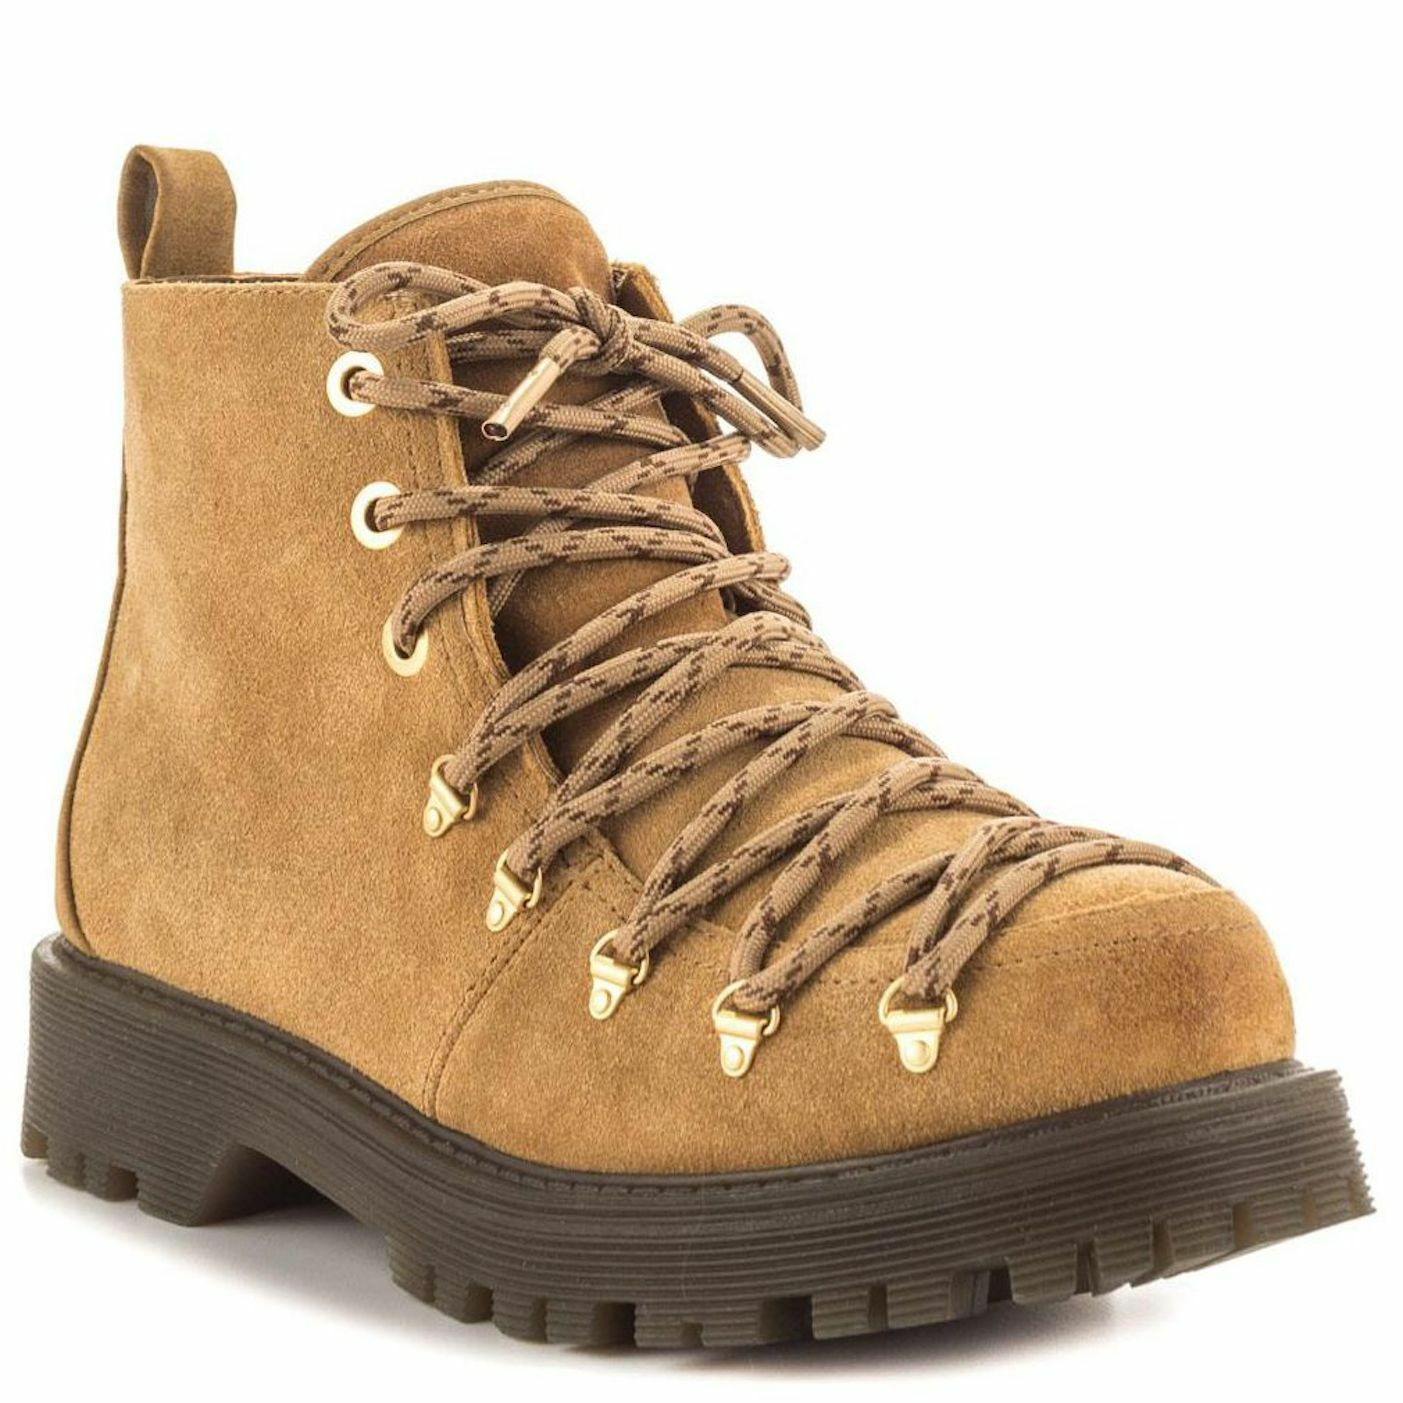 Circus by by by Sam Edelman Kane Camel Brown Lace Up Combat Suede Ankle Boots NEW 691245